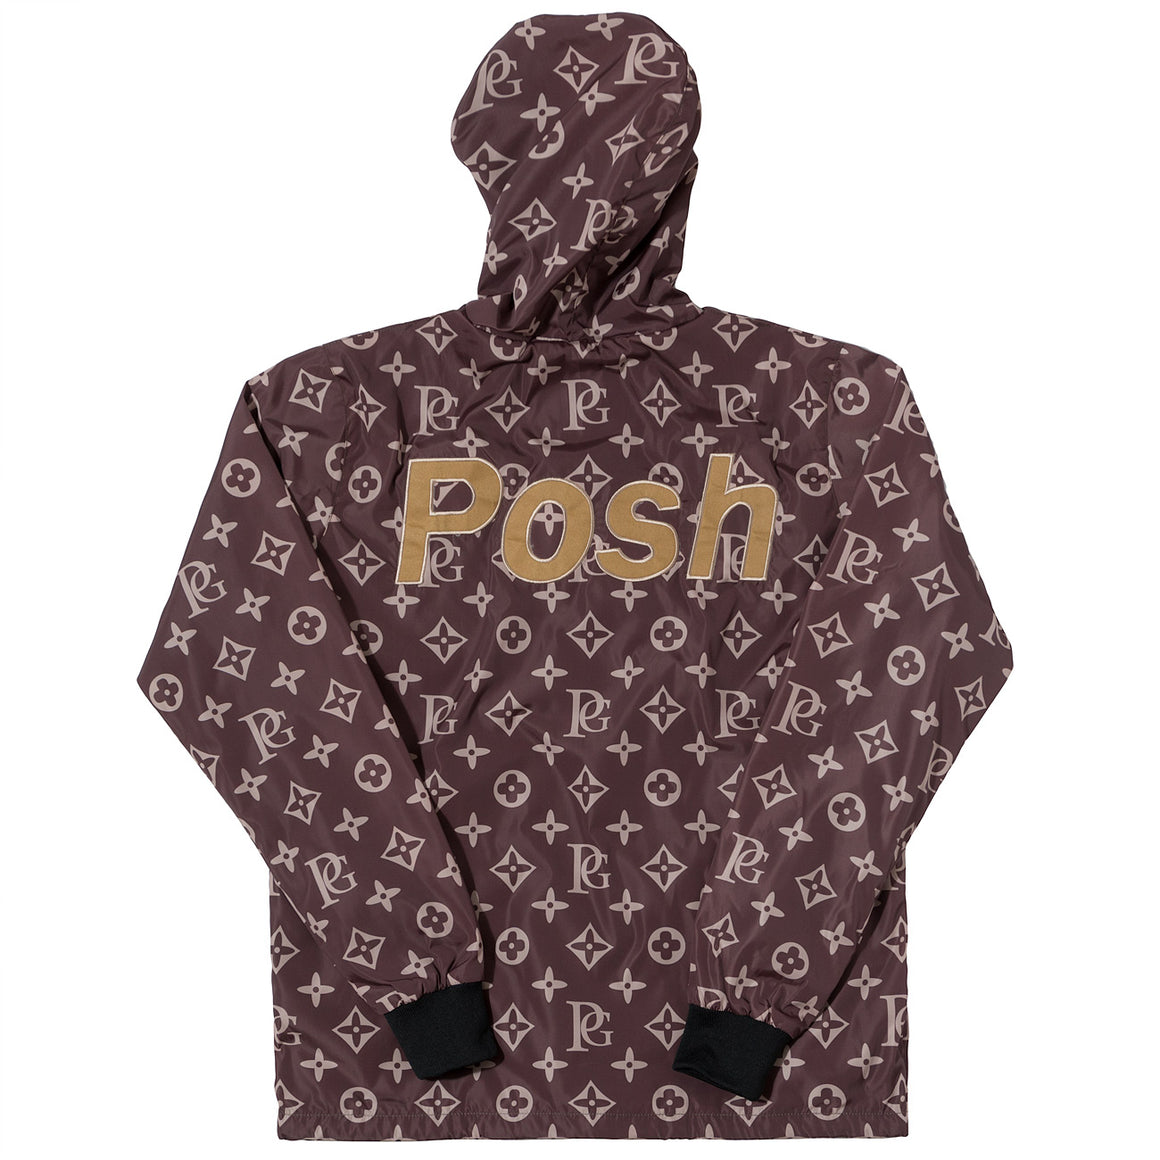 Posh LV_SPRM Windbreaker Hoodie Jacket Brown - Trends Society